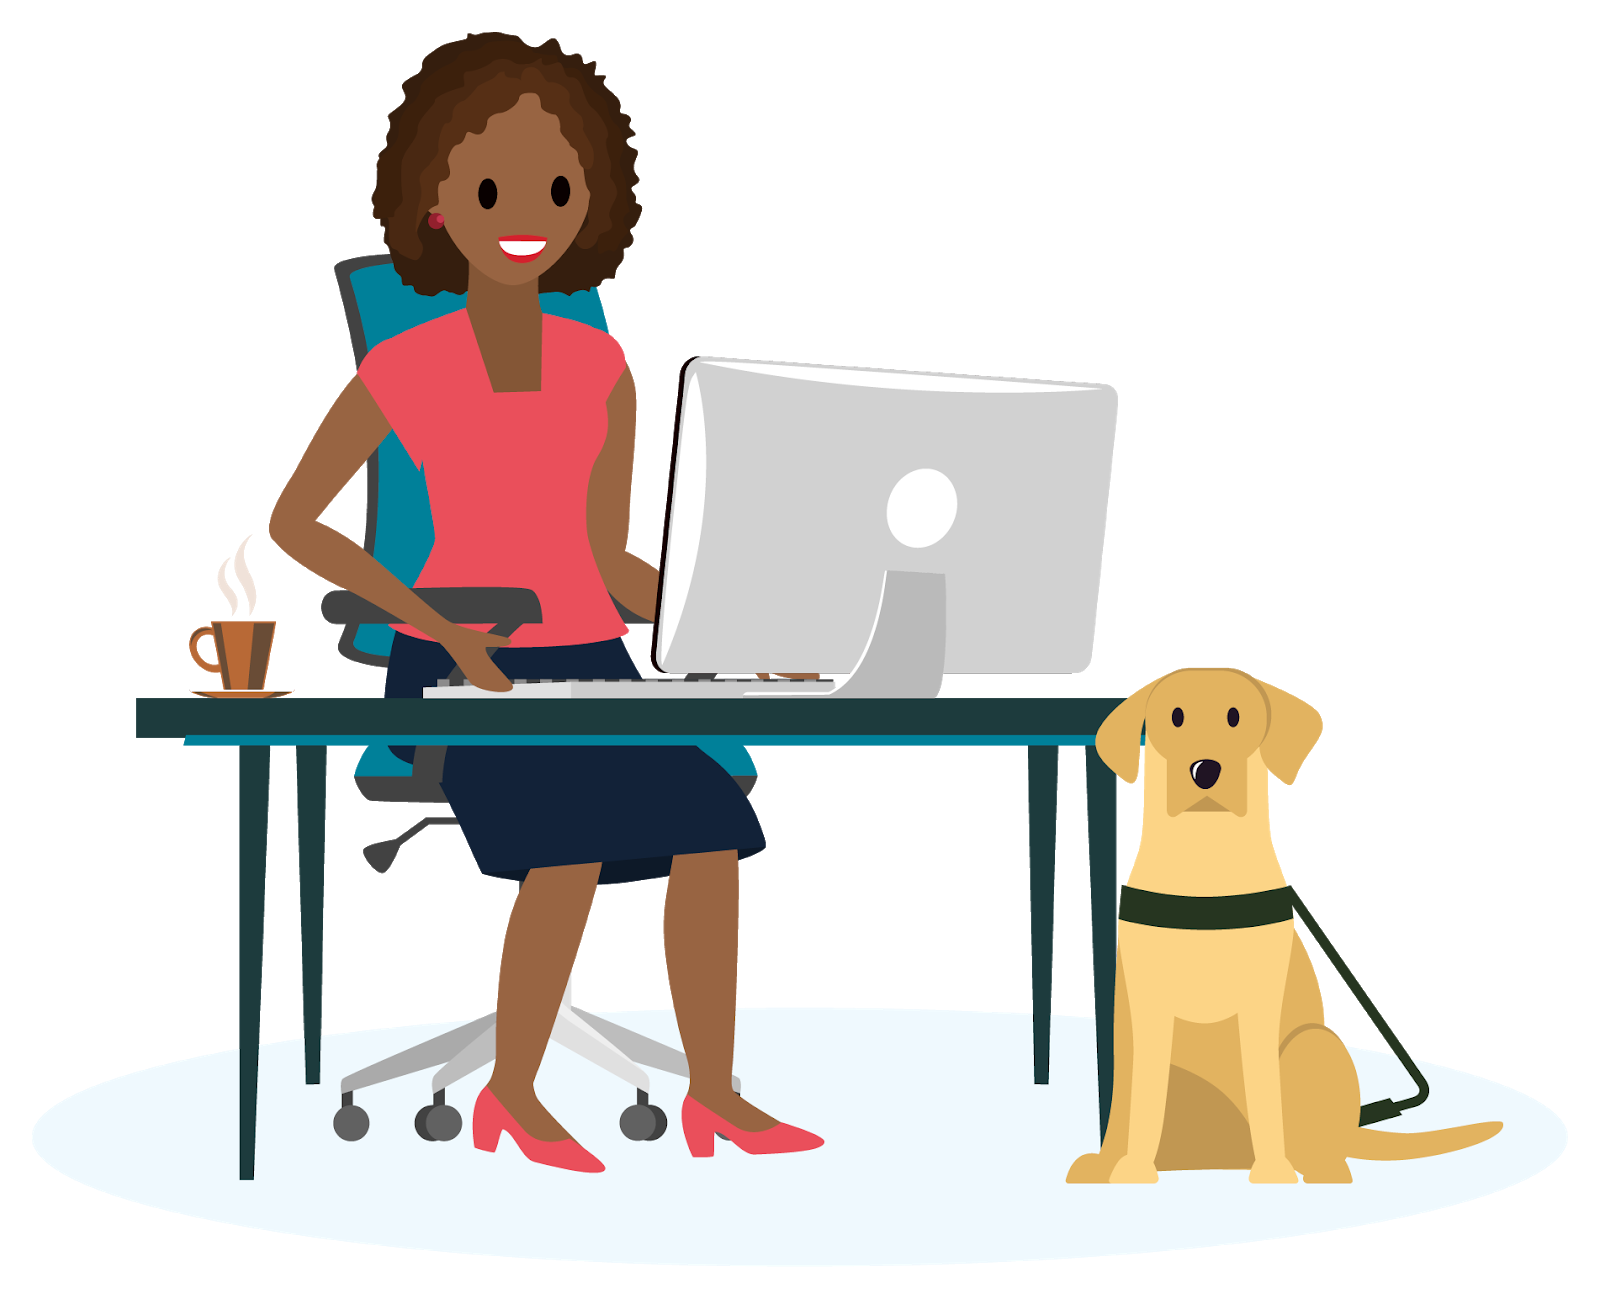 Woman sitting at a desk typing on a keyboard with a yellow lab guide dog sitting beside her.